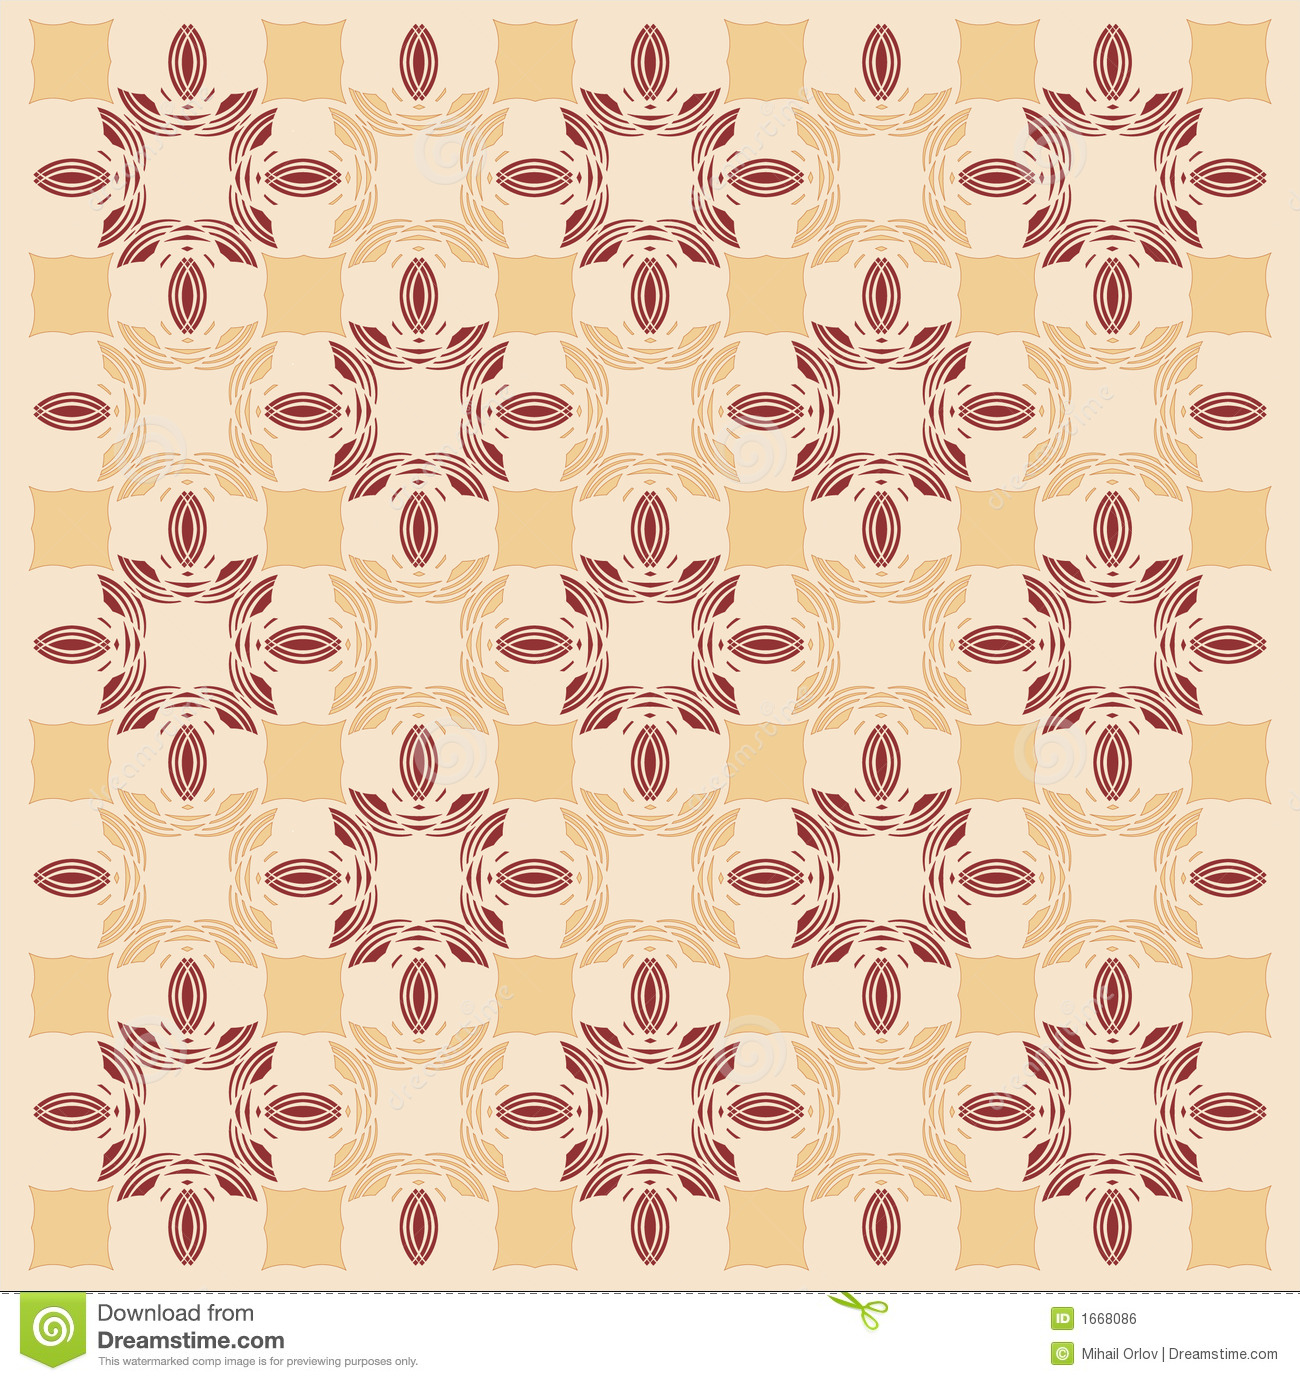 Papel de parede decorativo imagem de stock royalty free for Papel de pared decorativo